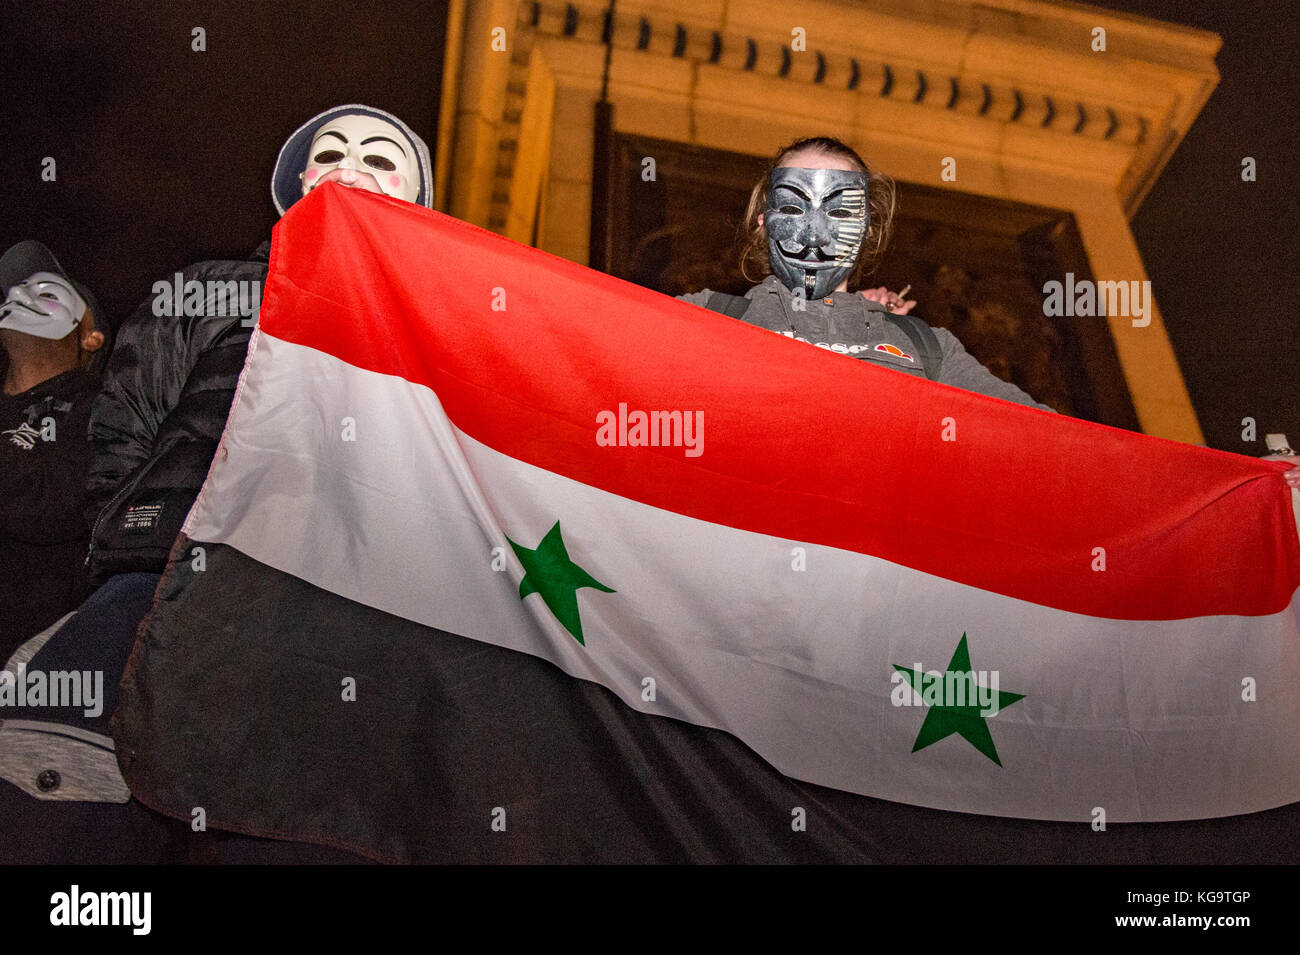 London, United Kingdom. 05th Nov, 2017. Million Mask March 2017 takes place in central London. Credit: Peter Manning/Alamy Stock Photo